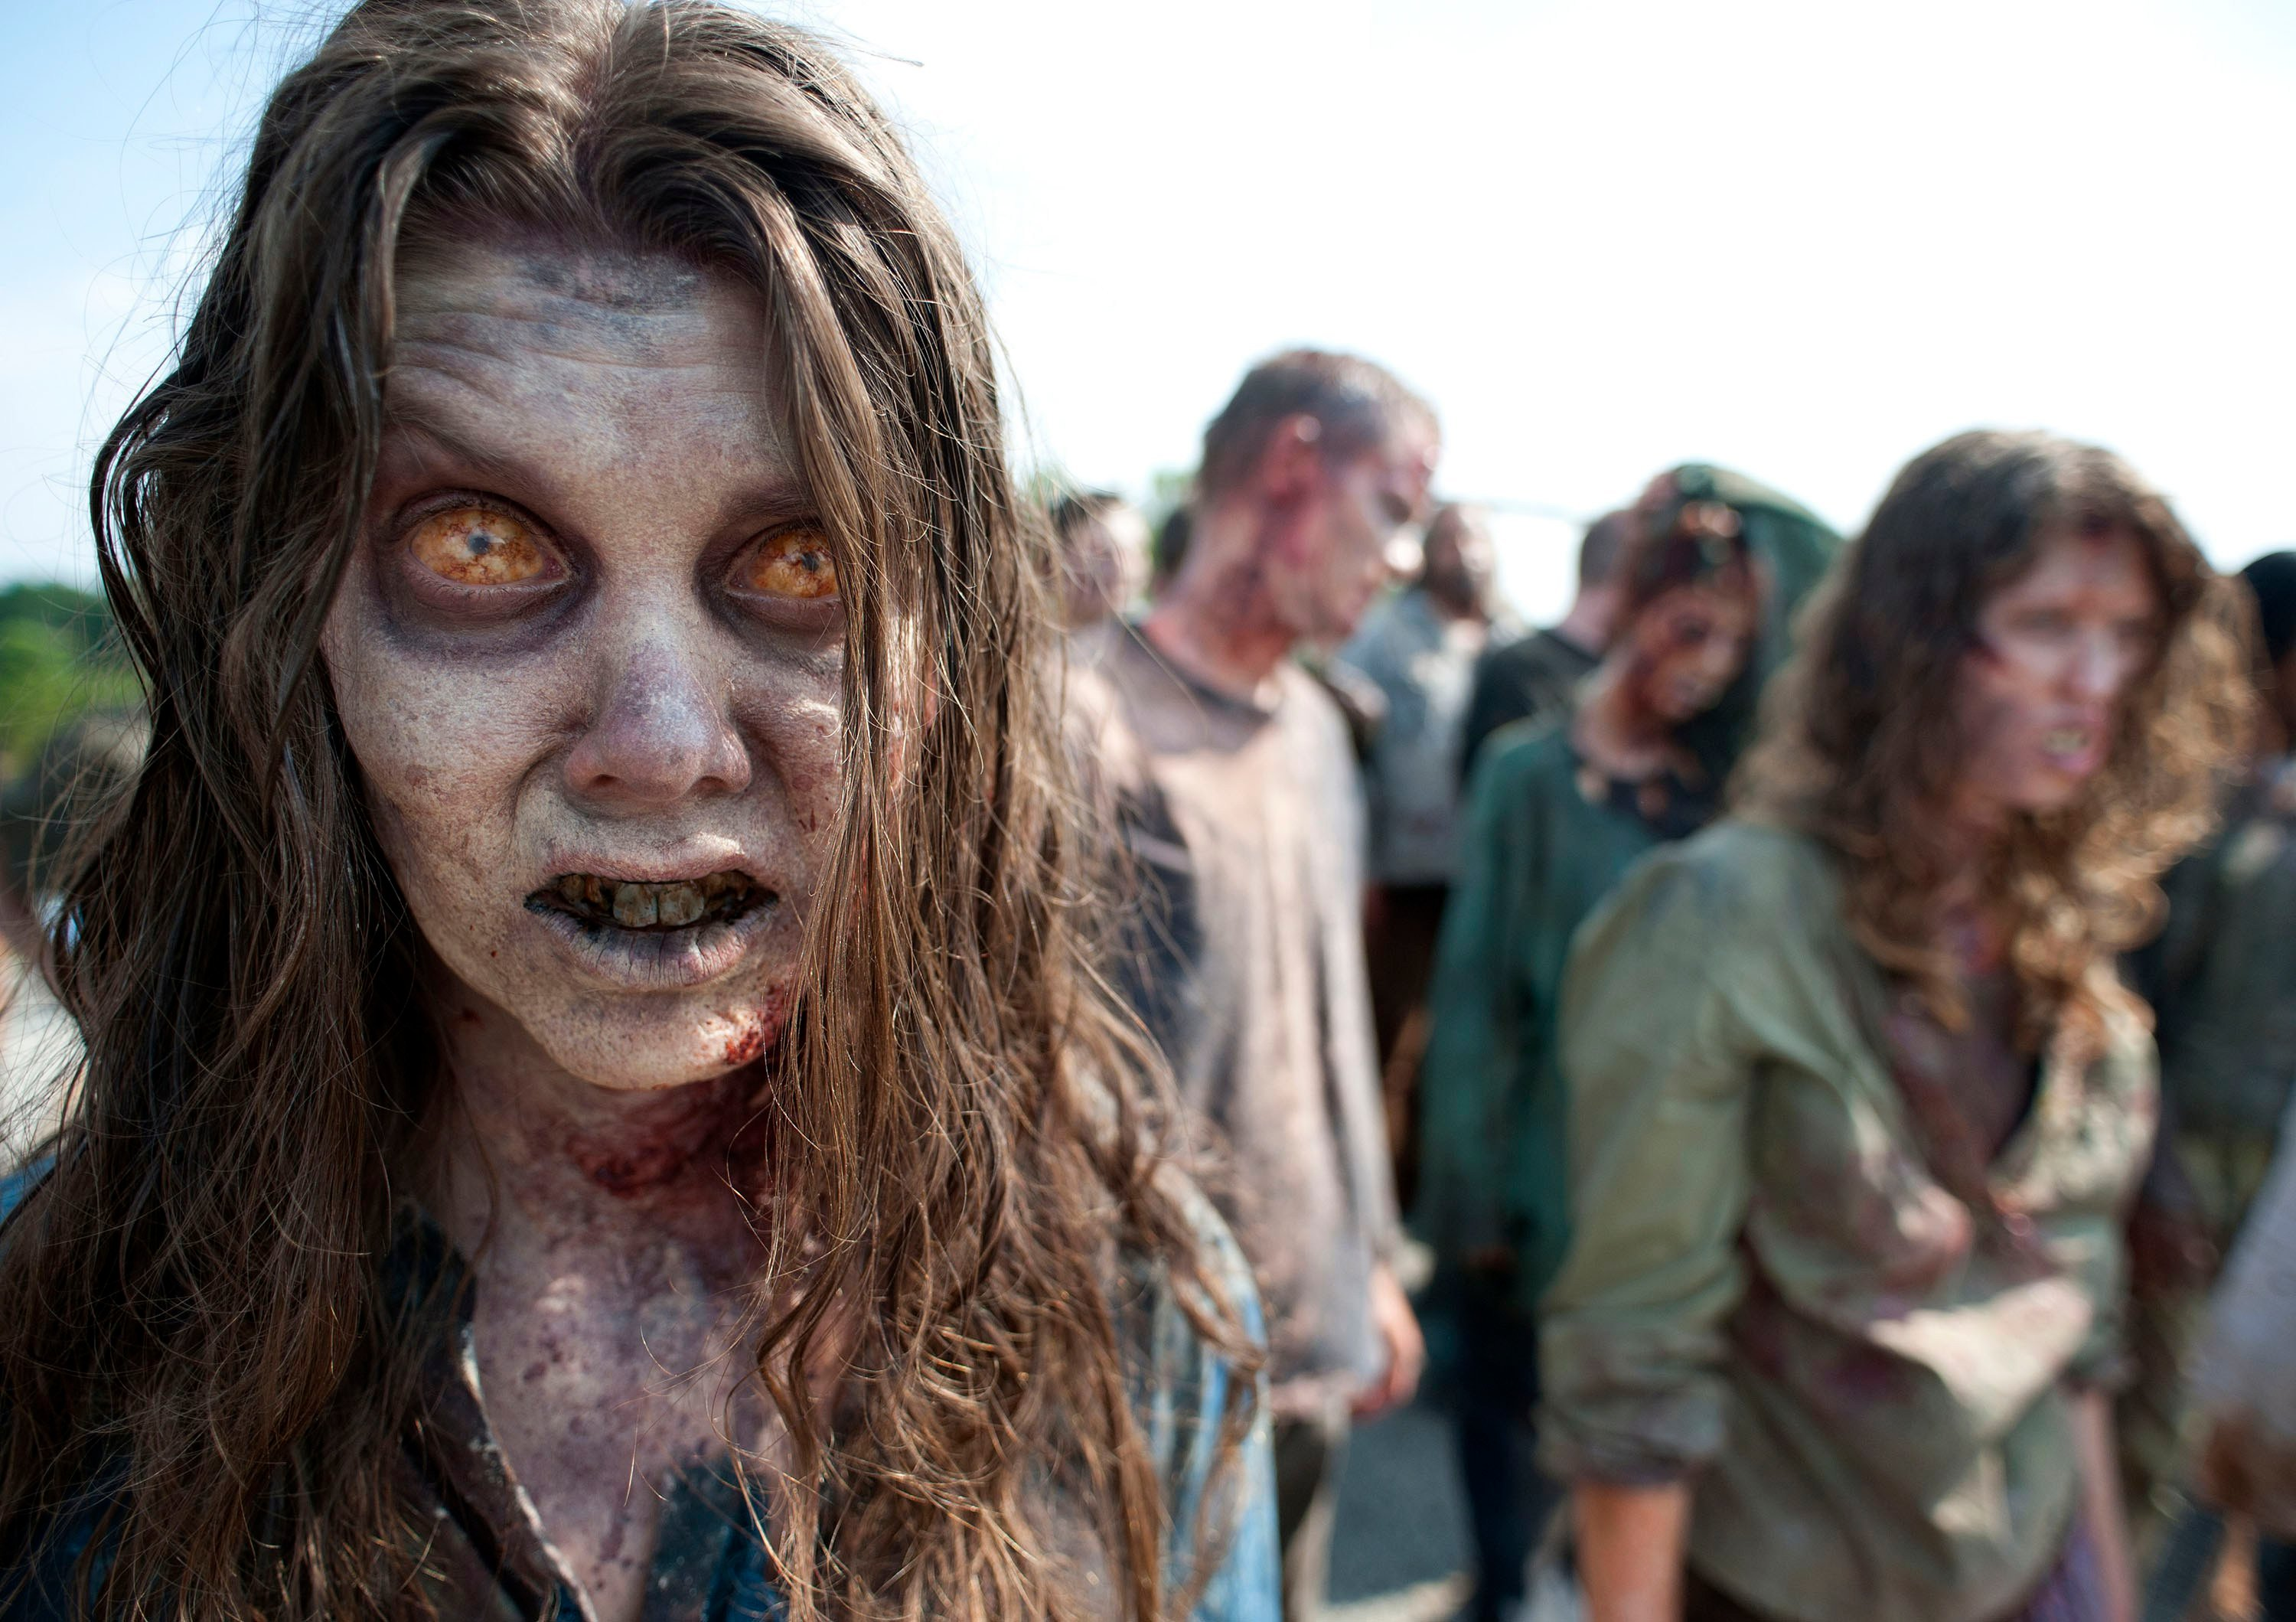 Usually this is something that people only have to worry about in horror movies, but could a zombie apocalypse physically happen in the real world?